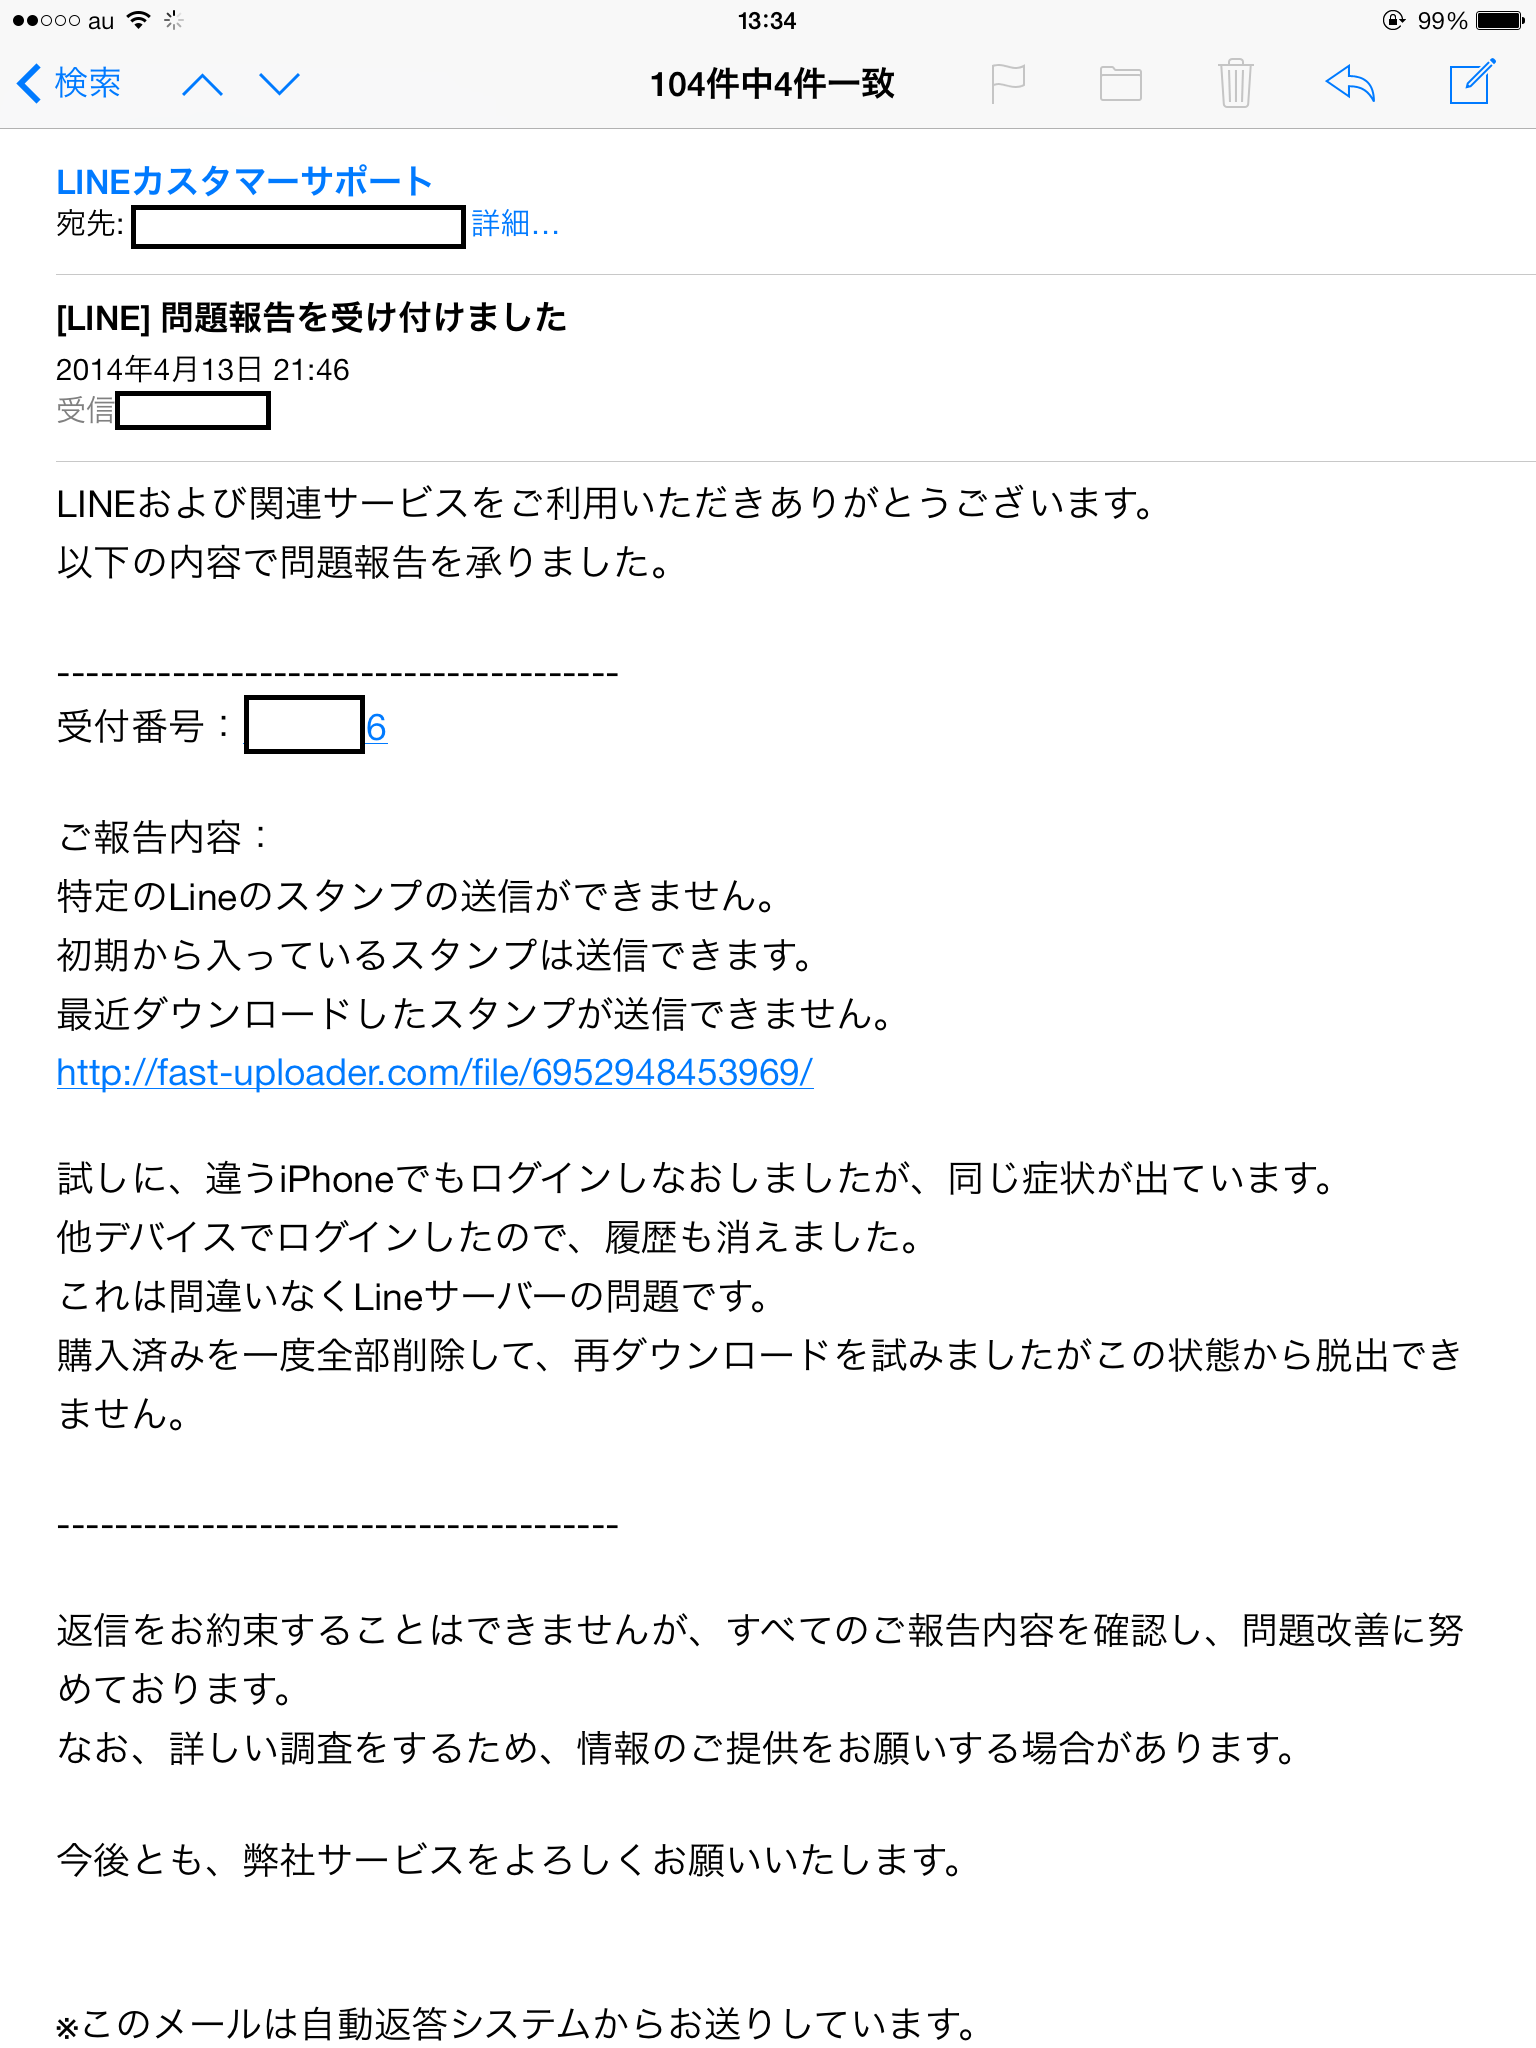 20140703_003.png